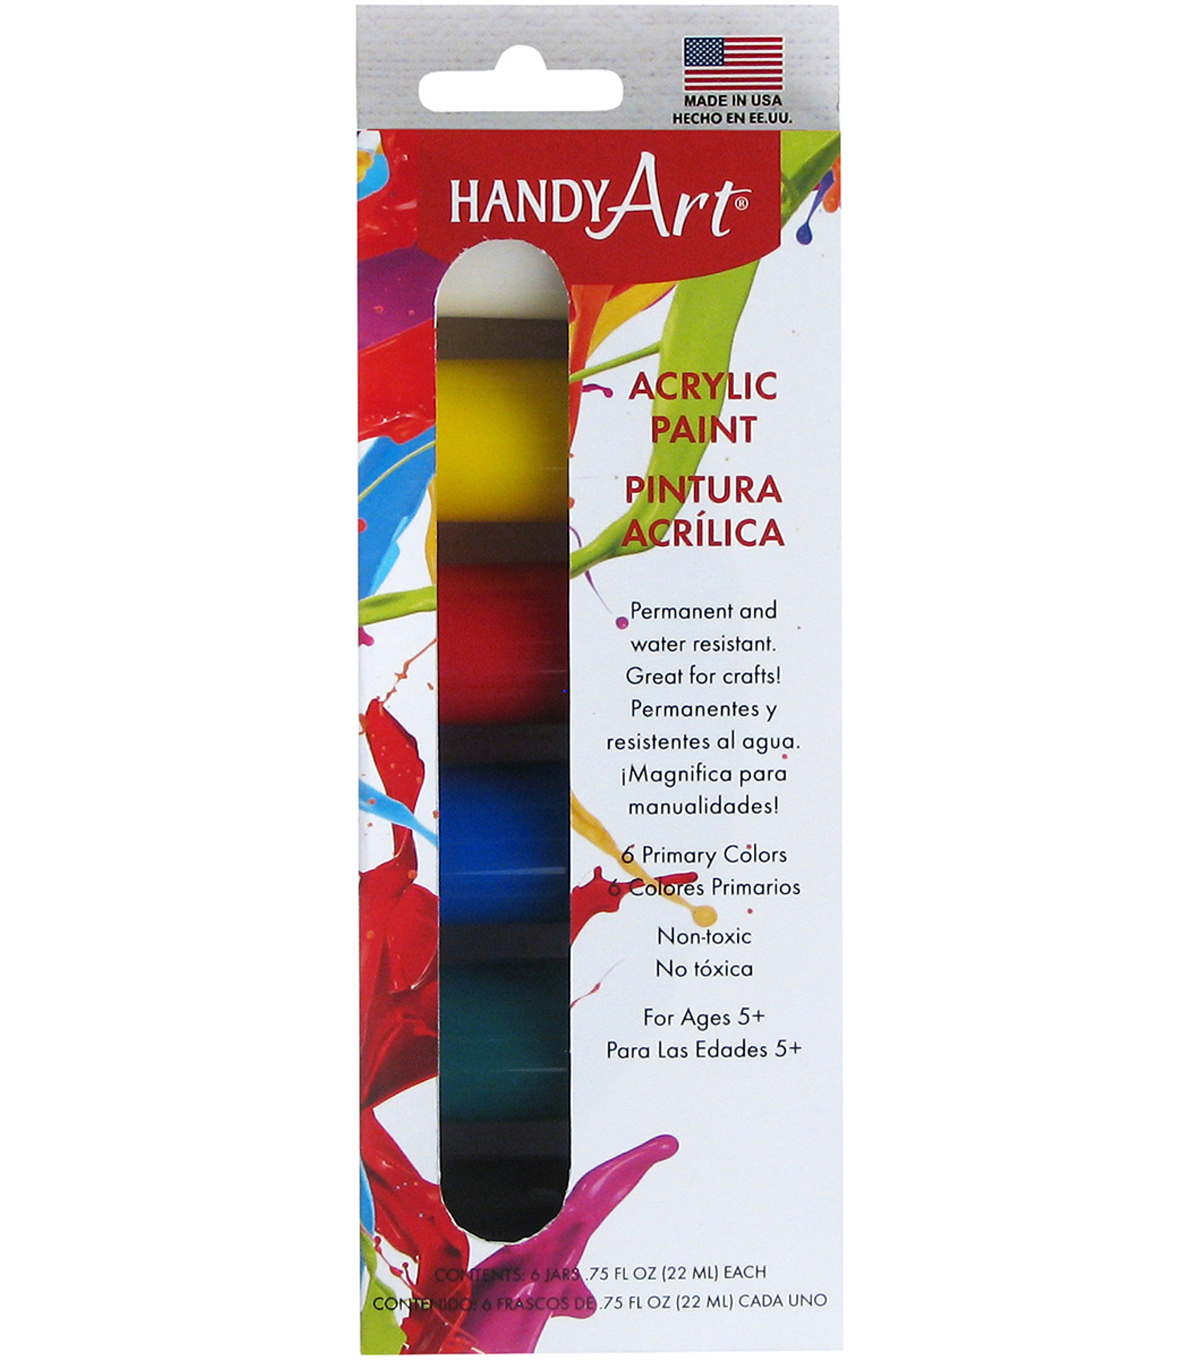 Handy Art Acrylic Paint Kit .75oz 6/Pkg